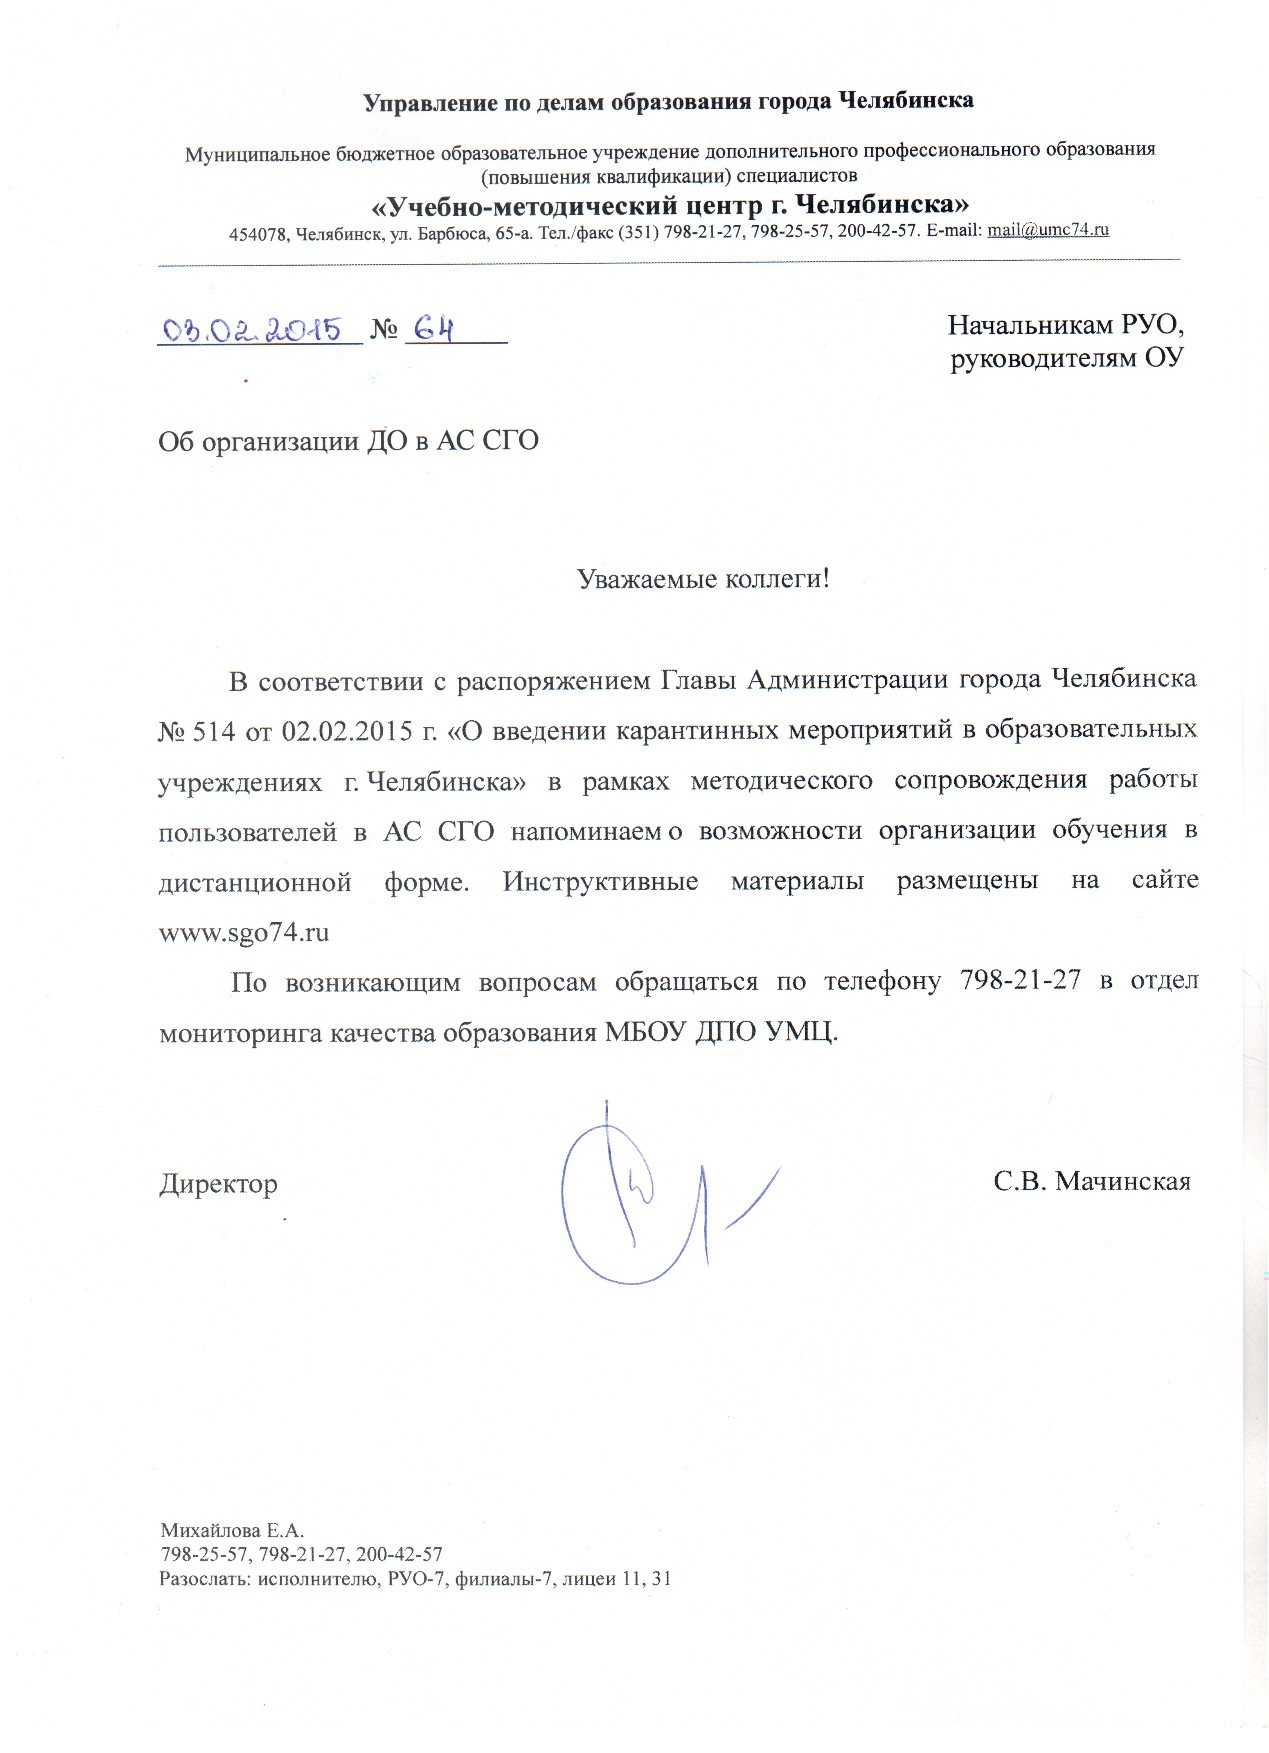 Attachment № 64 от 03.02.2015.jpg